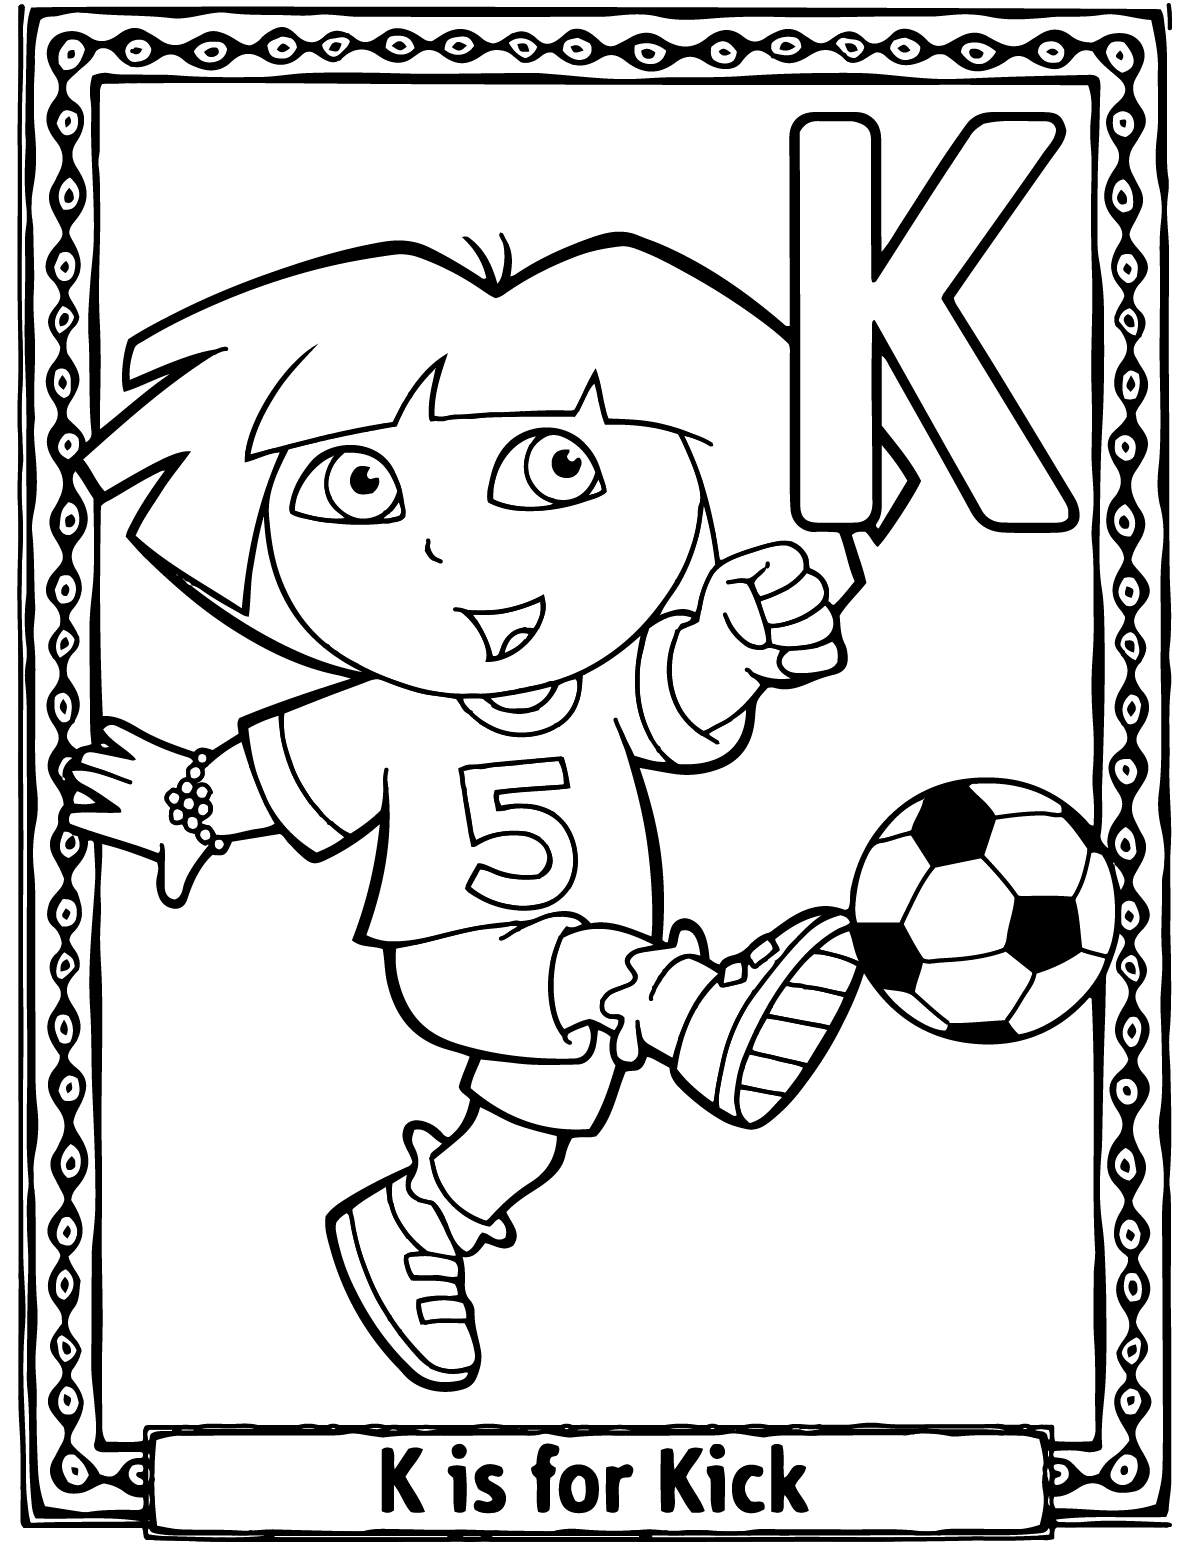 Letter k coloring pages for preschoolers - Letter K Coloring Pages For Preschoolers Top 10 Letter K Coloring Pages Your Toddler Will